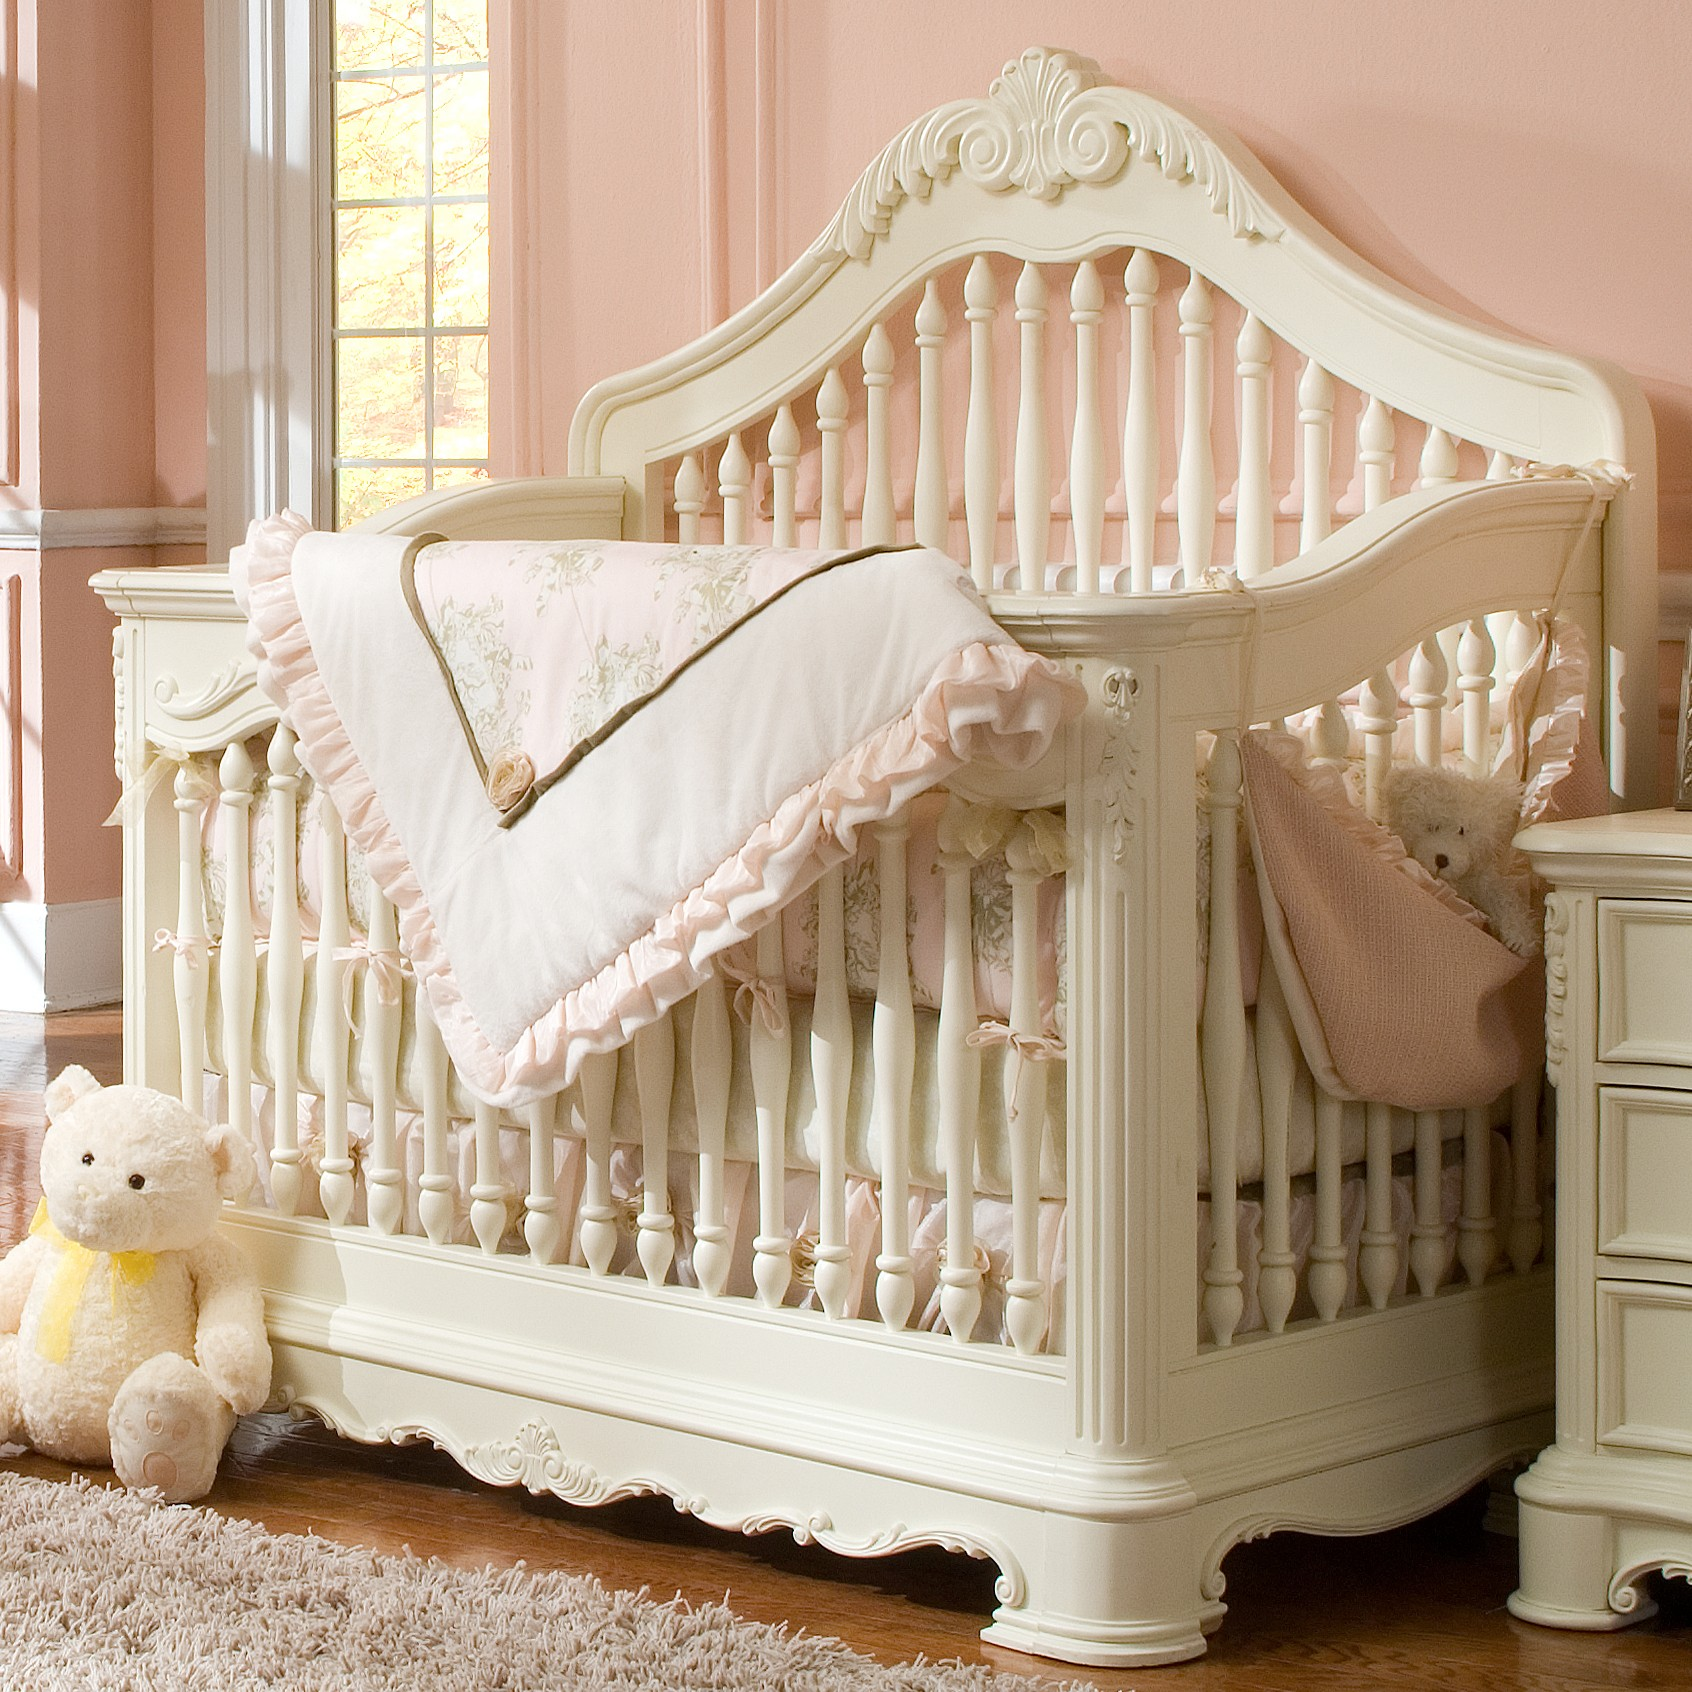 Cheap Cribs | Cribs Under $100 | Round Cribs for Sale Cheap